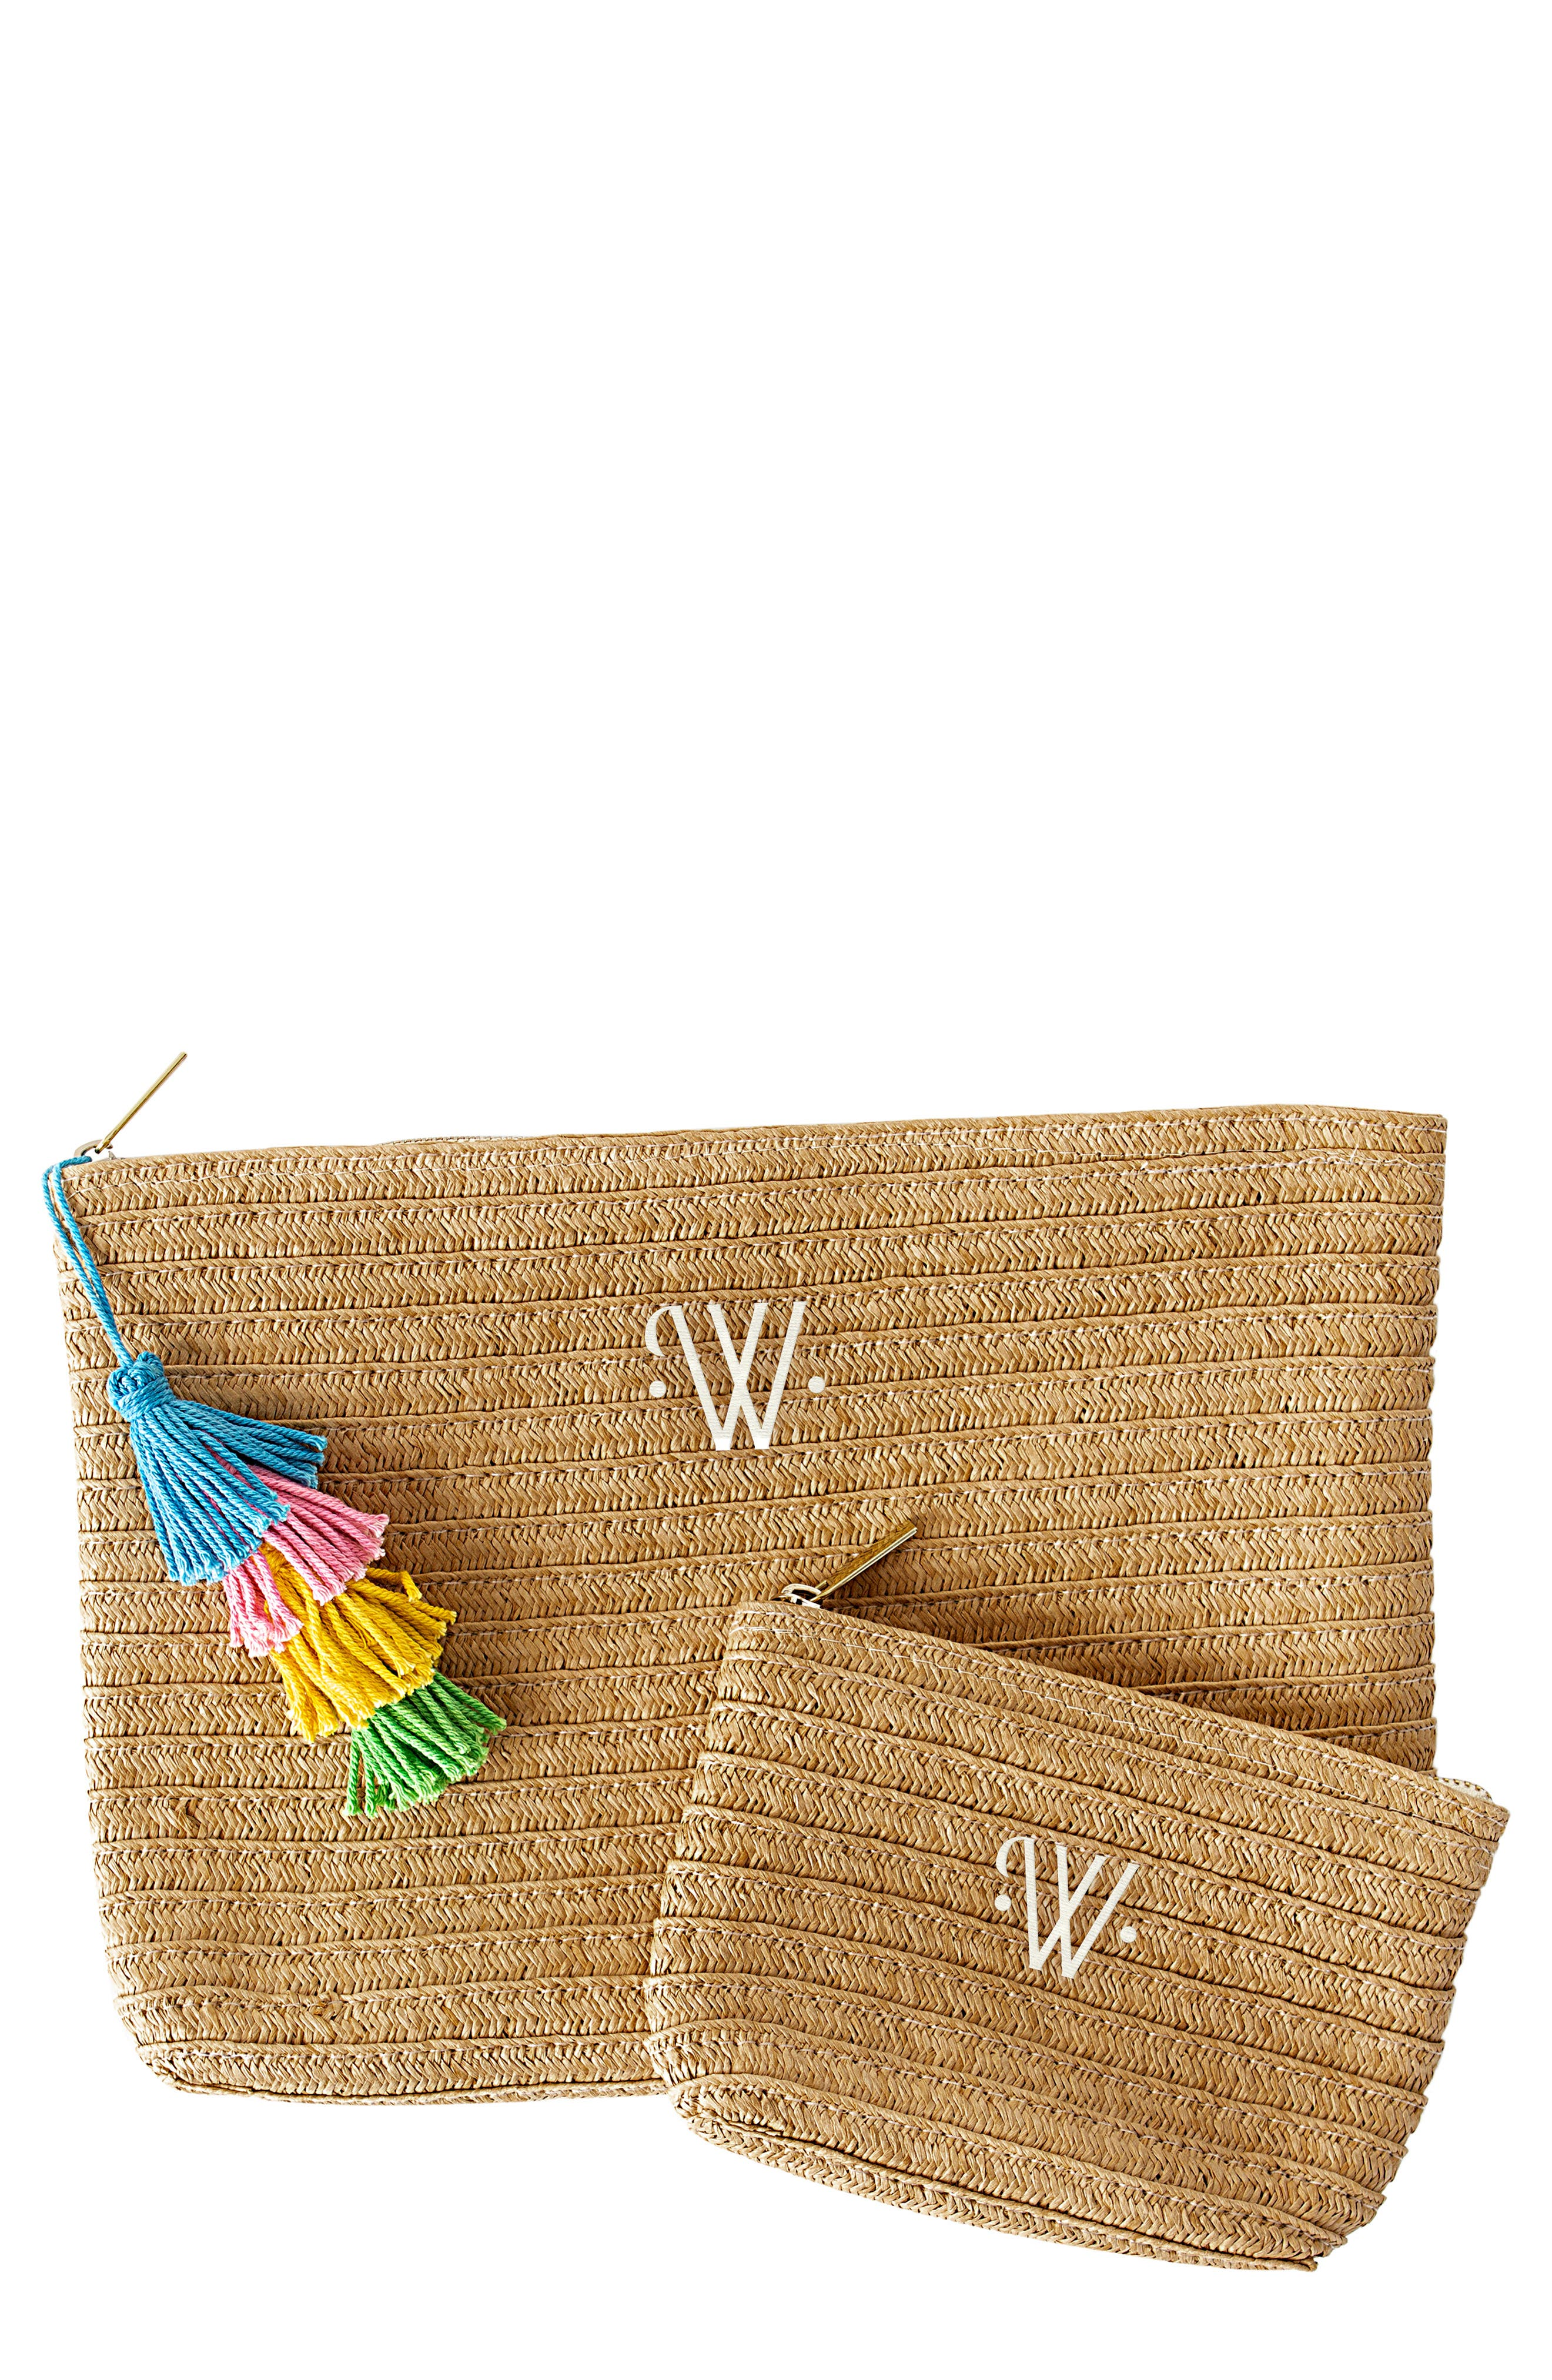 CATHY'S CONCEPTS, Set of 2 Monogram Straw Pouches, Main thumbnail 1, color, BROWN-W